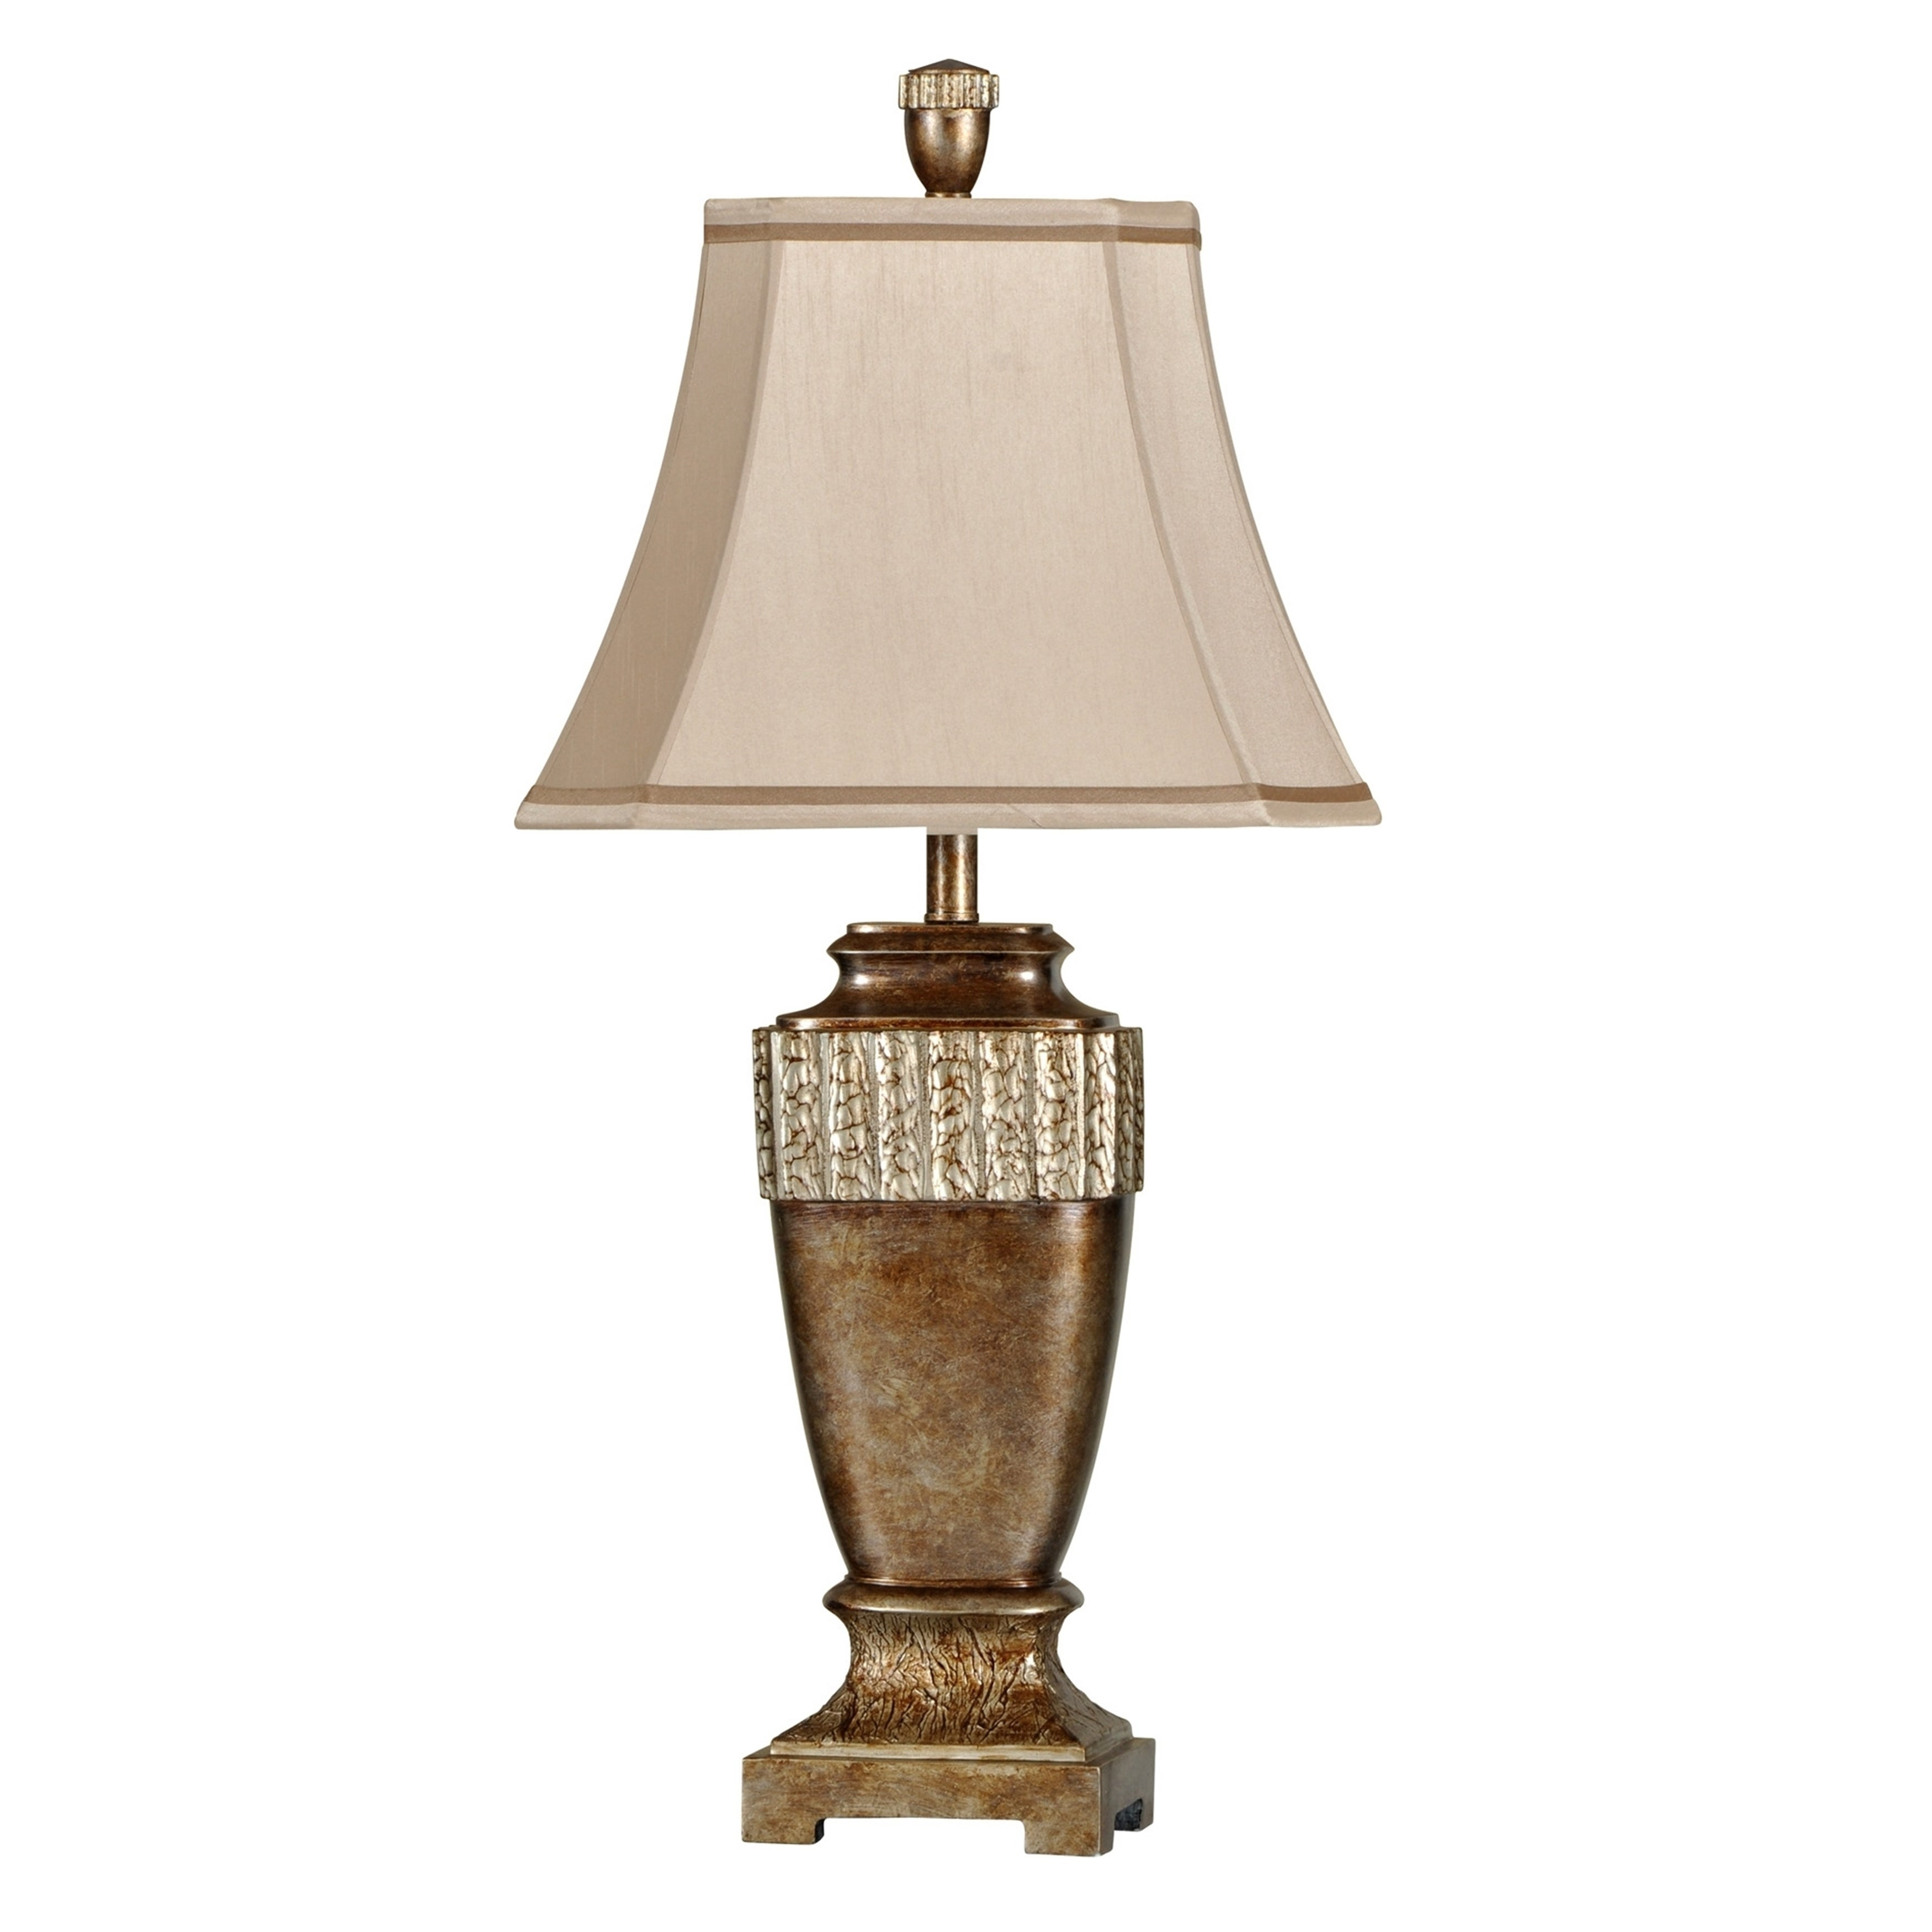 Shop conway brown glaze with silver leaf table lamp beige fabric shop conway brown glaze with silver leaf table lamp beige fabric shade free shipping today overstock 20874998 aloadofball Choice Image